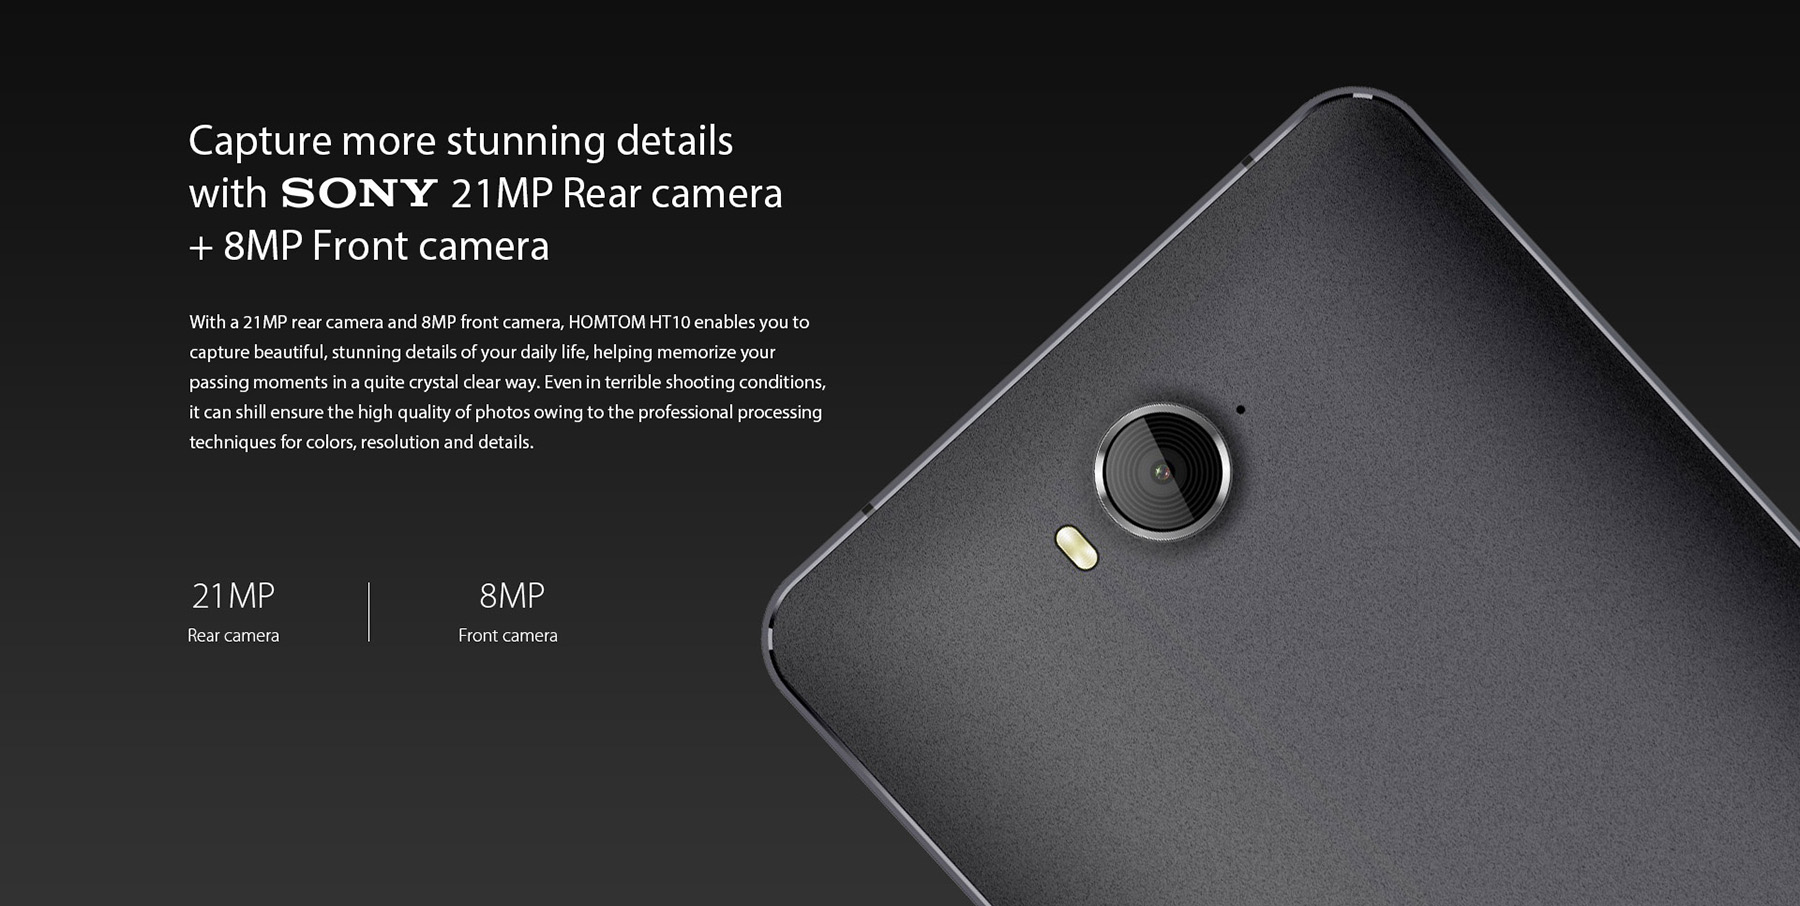 HOMTOM HT10 Android 6.0 4G Phablet 5.5 inch Arc Screen MTK6797 ( Helio X20 ) Deca Core 4GB RAM 32GB ROM 21MP Main Camera Iris Recognition